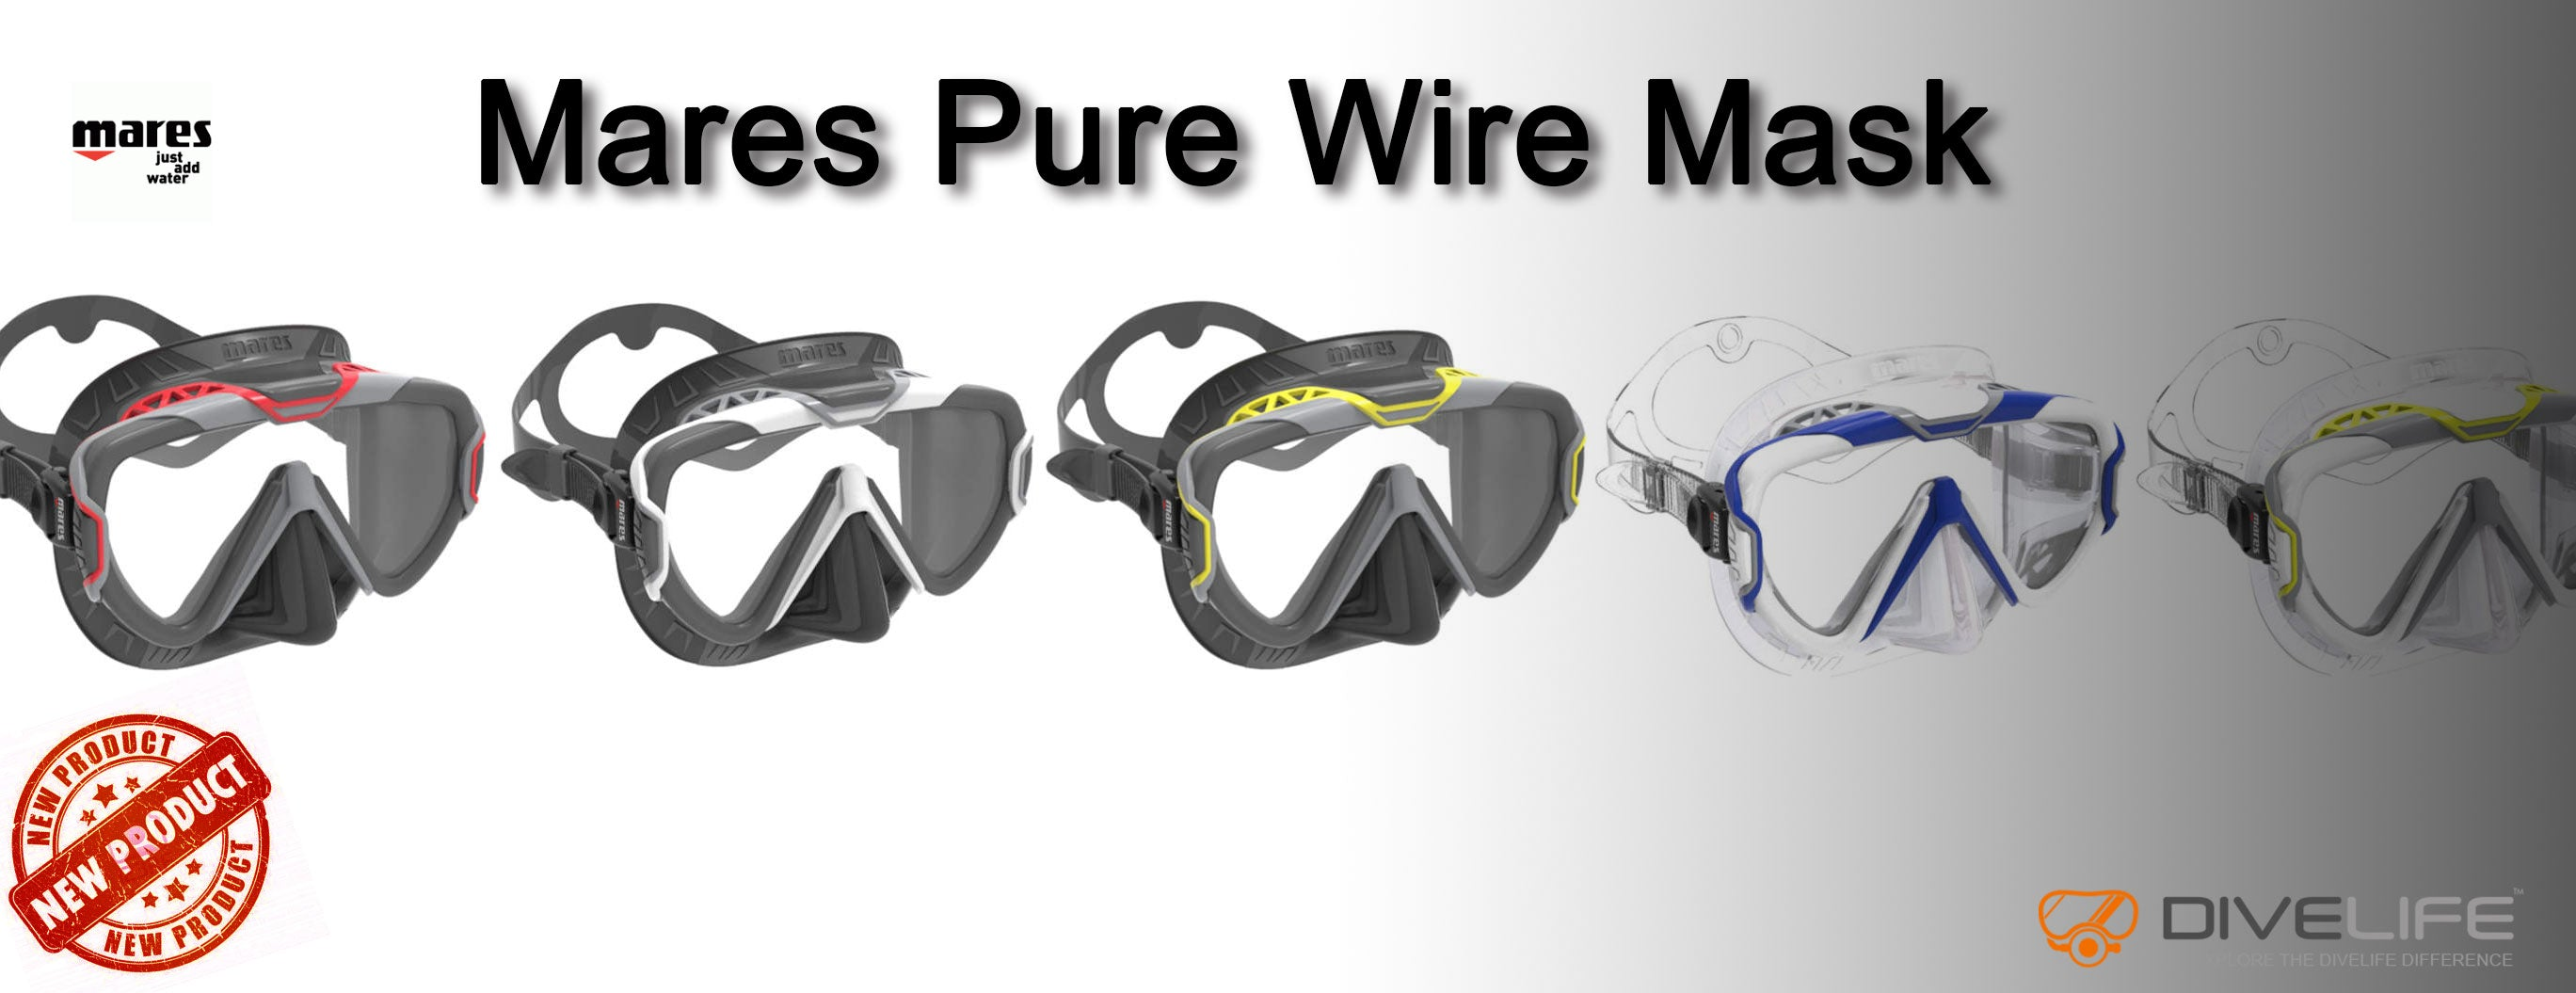 The New Mares Wire Mask